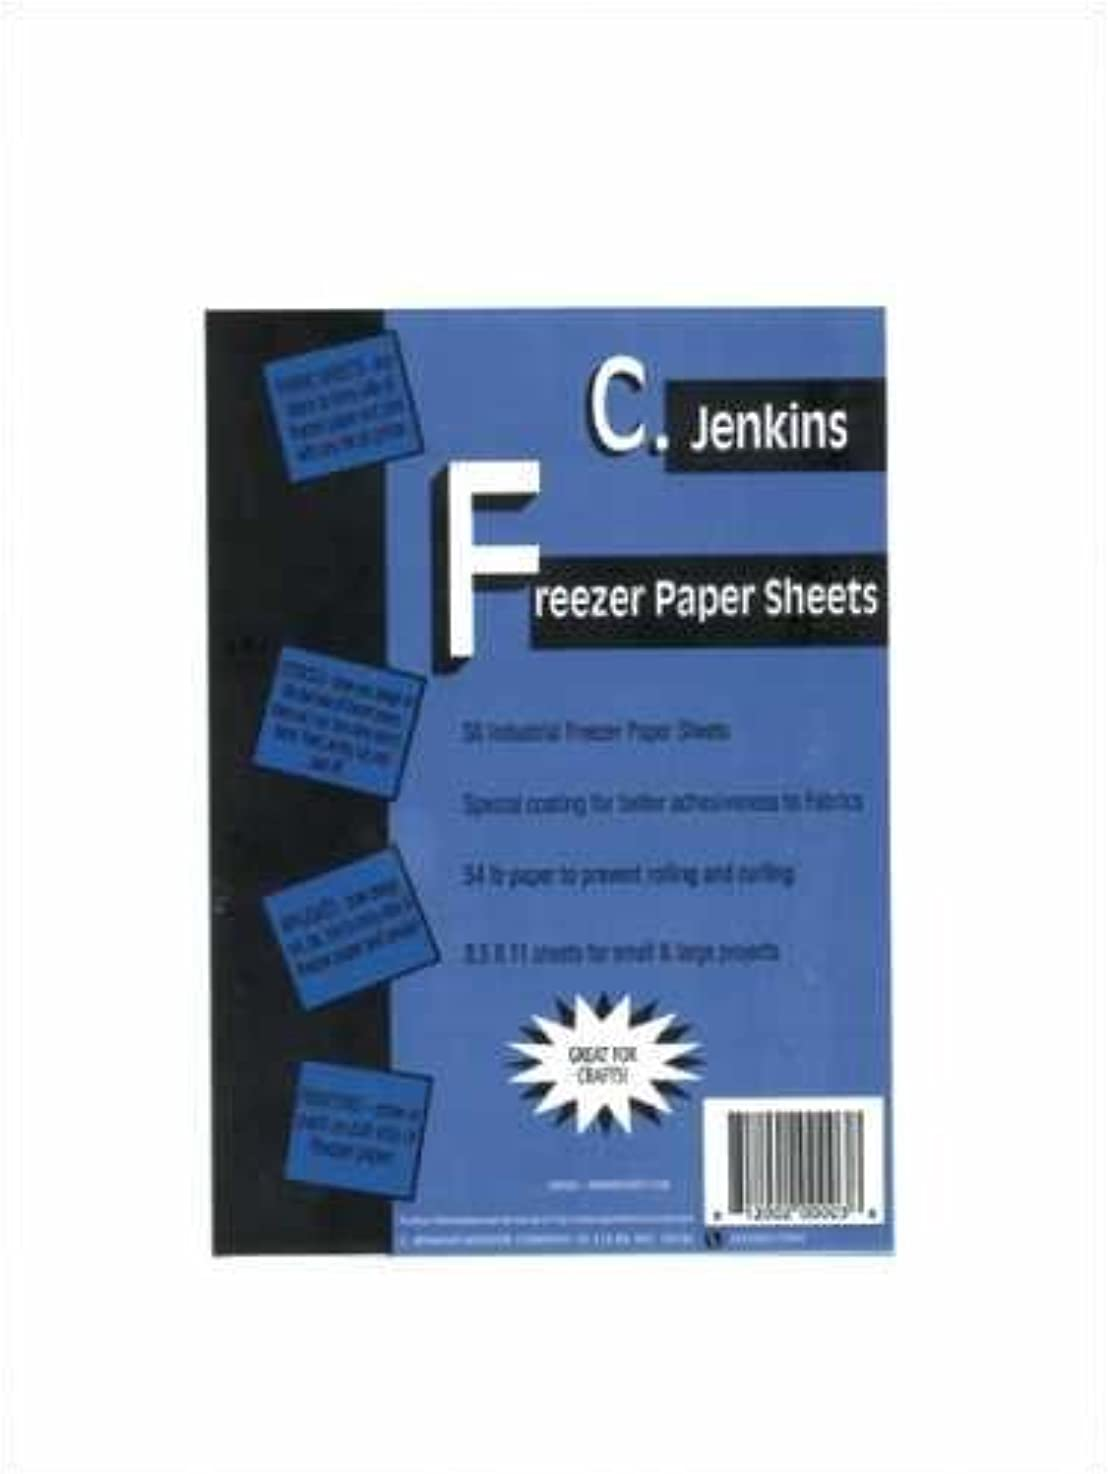 C. Jenkins 100 Industrial Freezer Paper Sheets 8.5